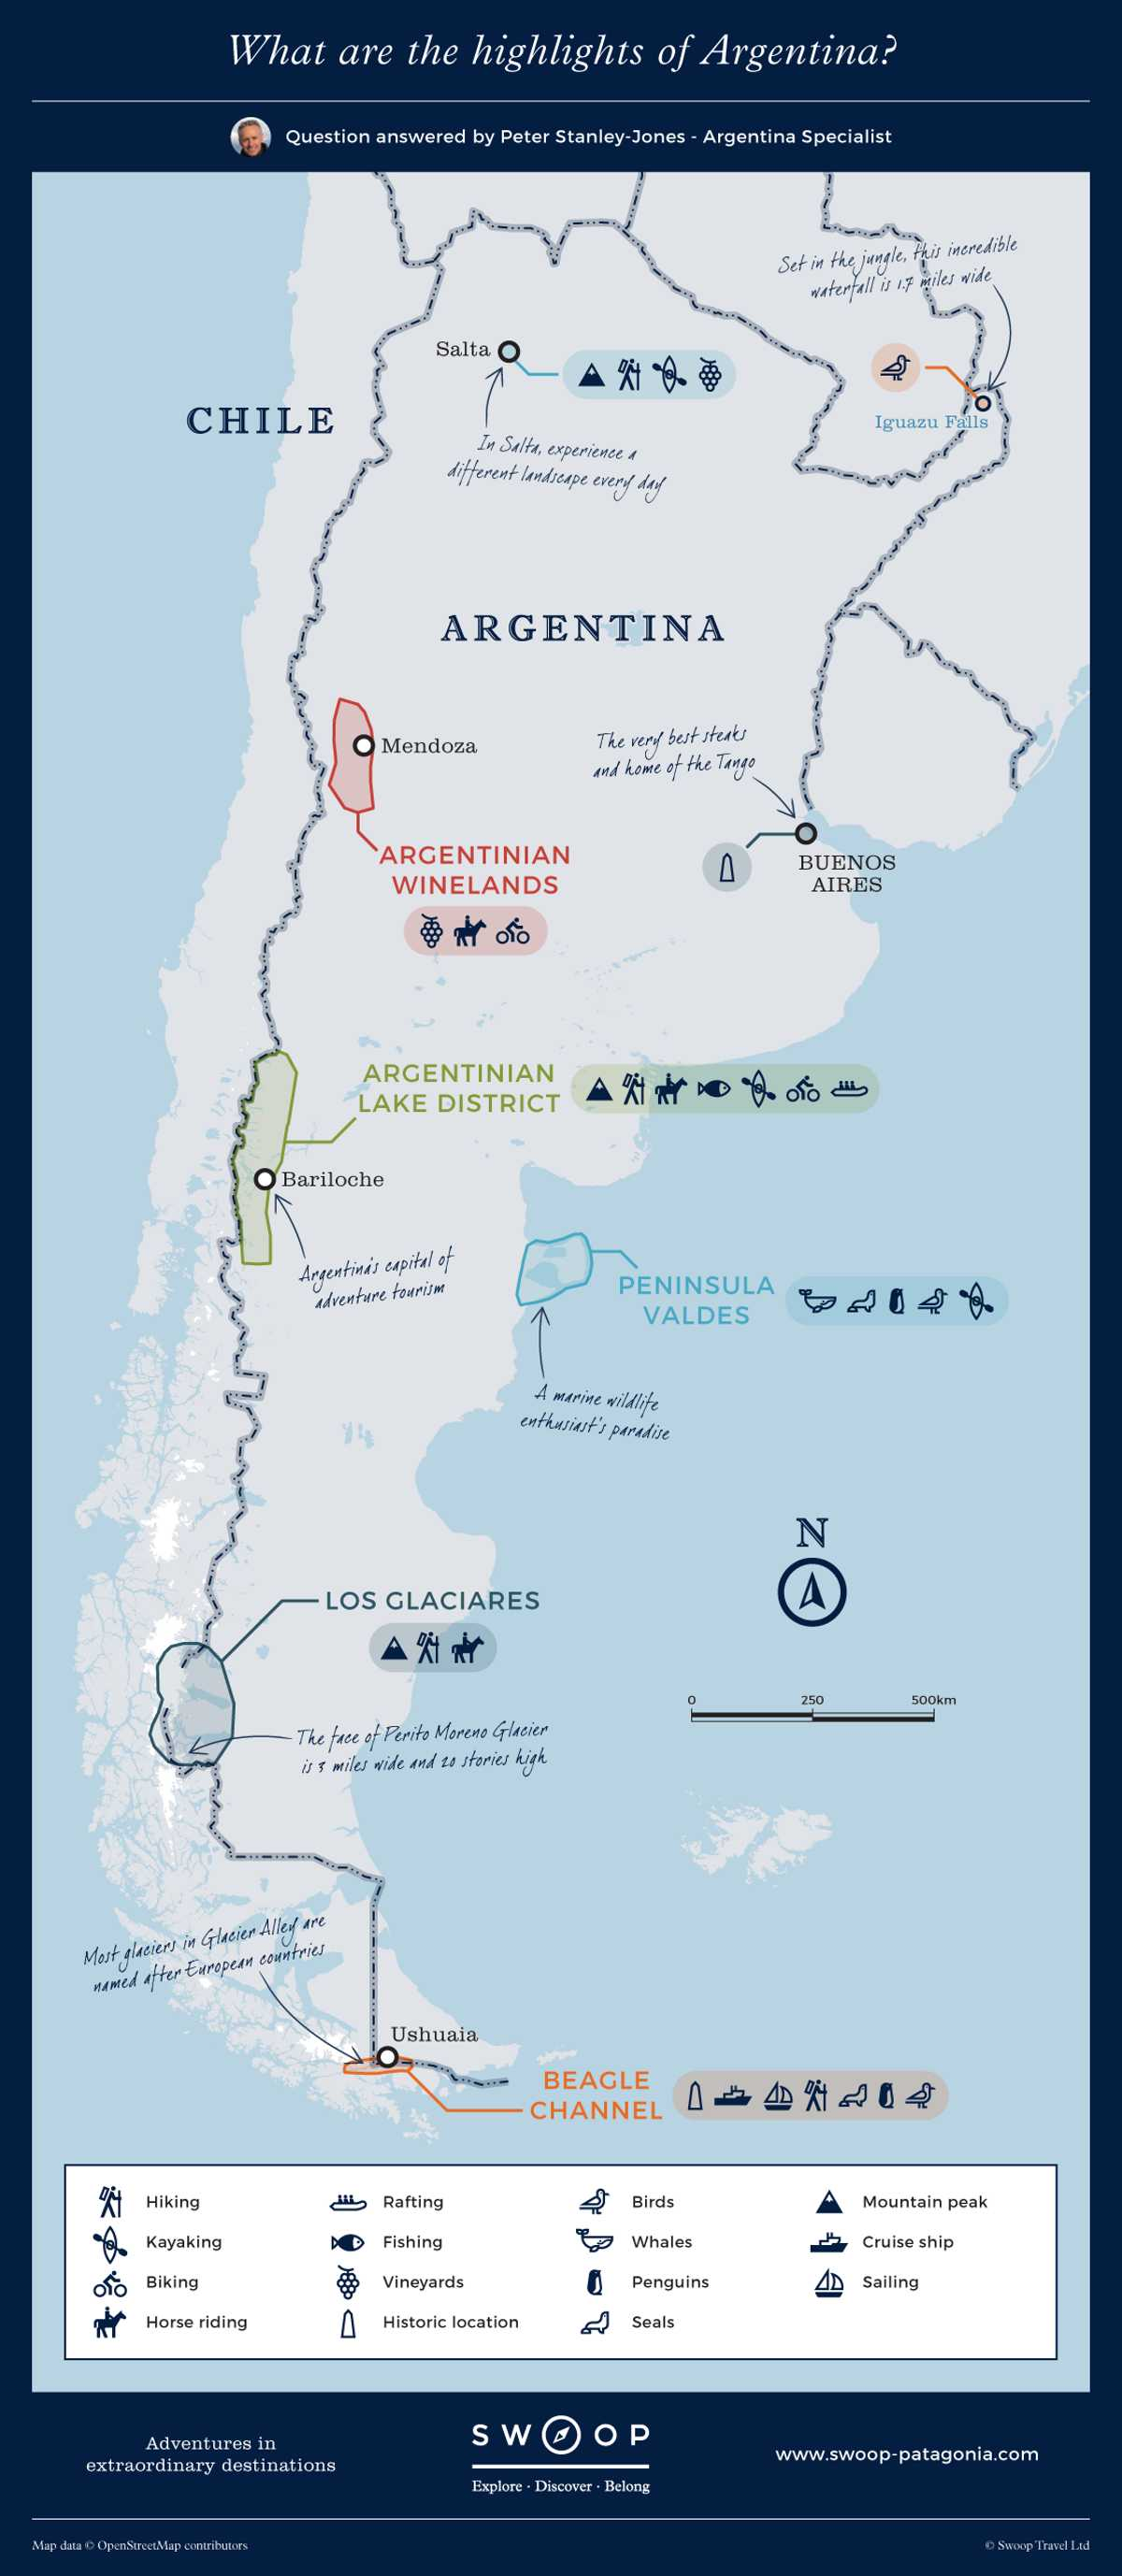 What are the highlights of Argentina